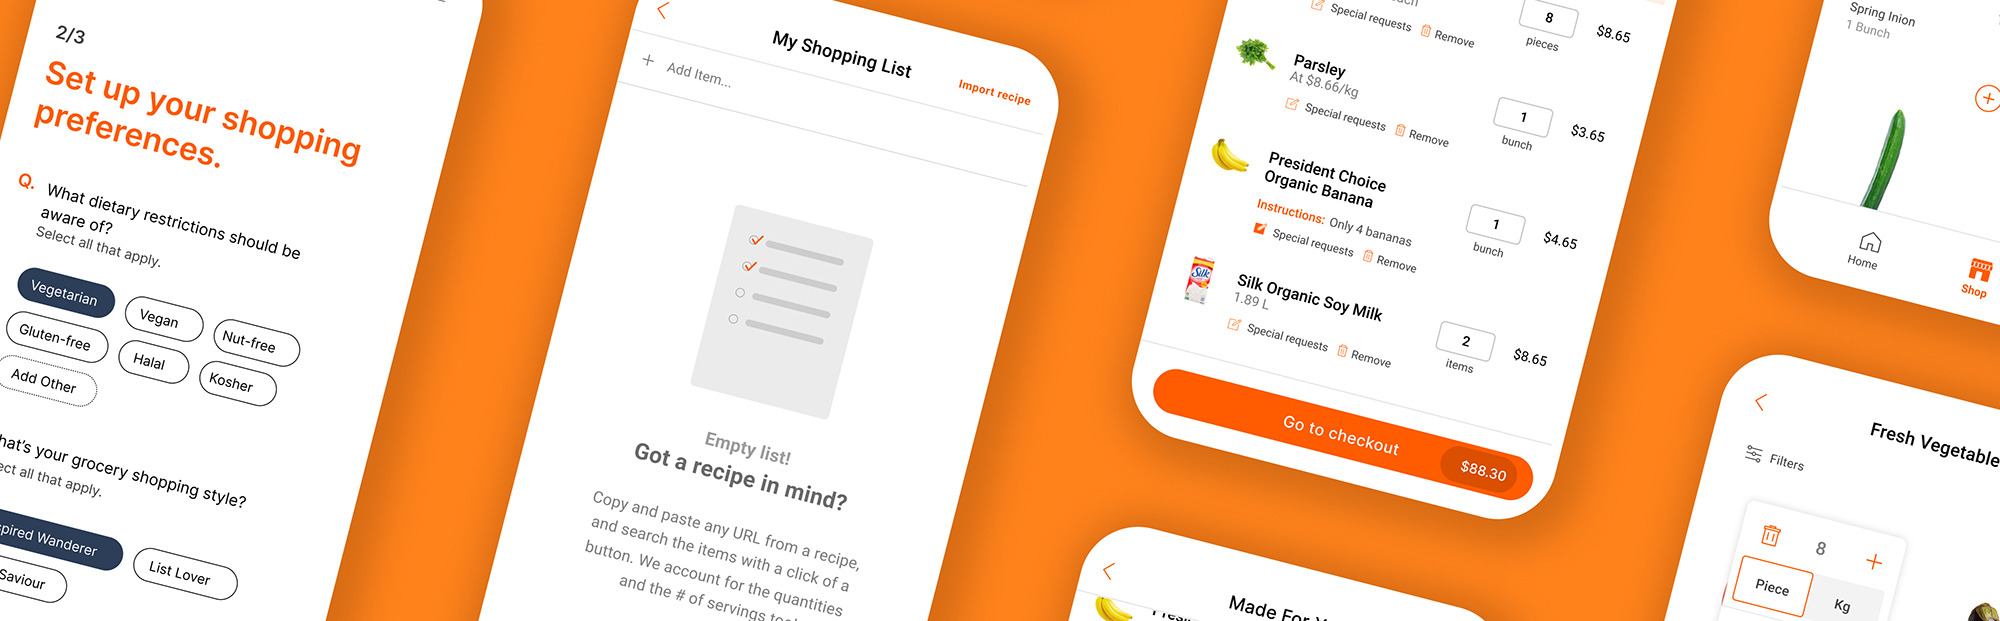 user interface mobile screens of food delivery app